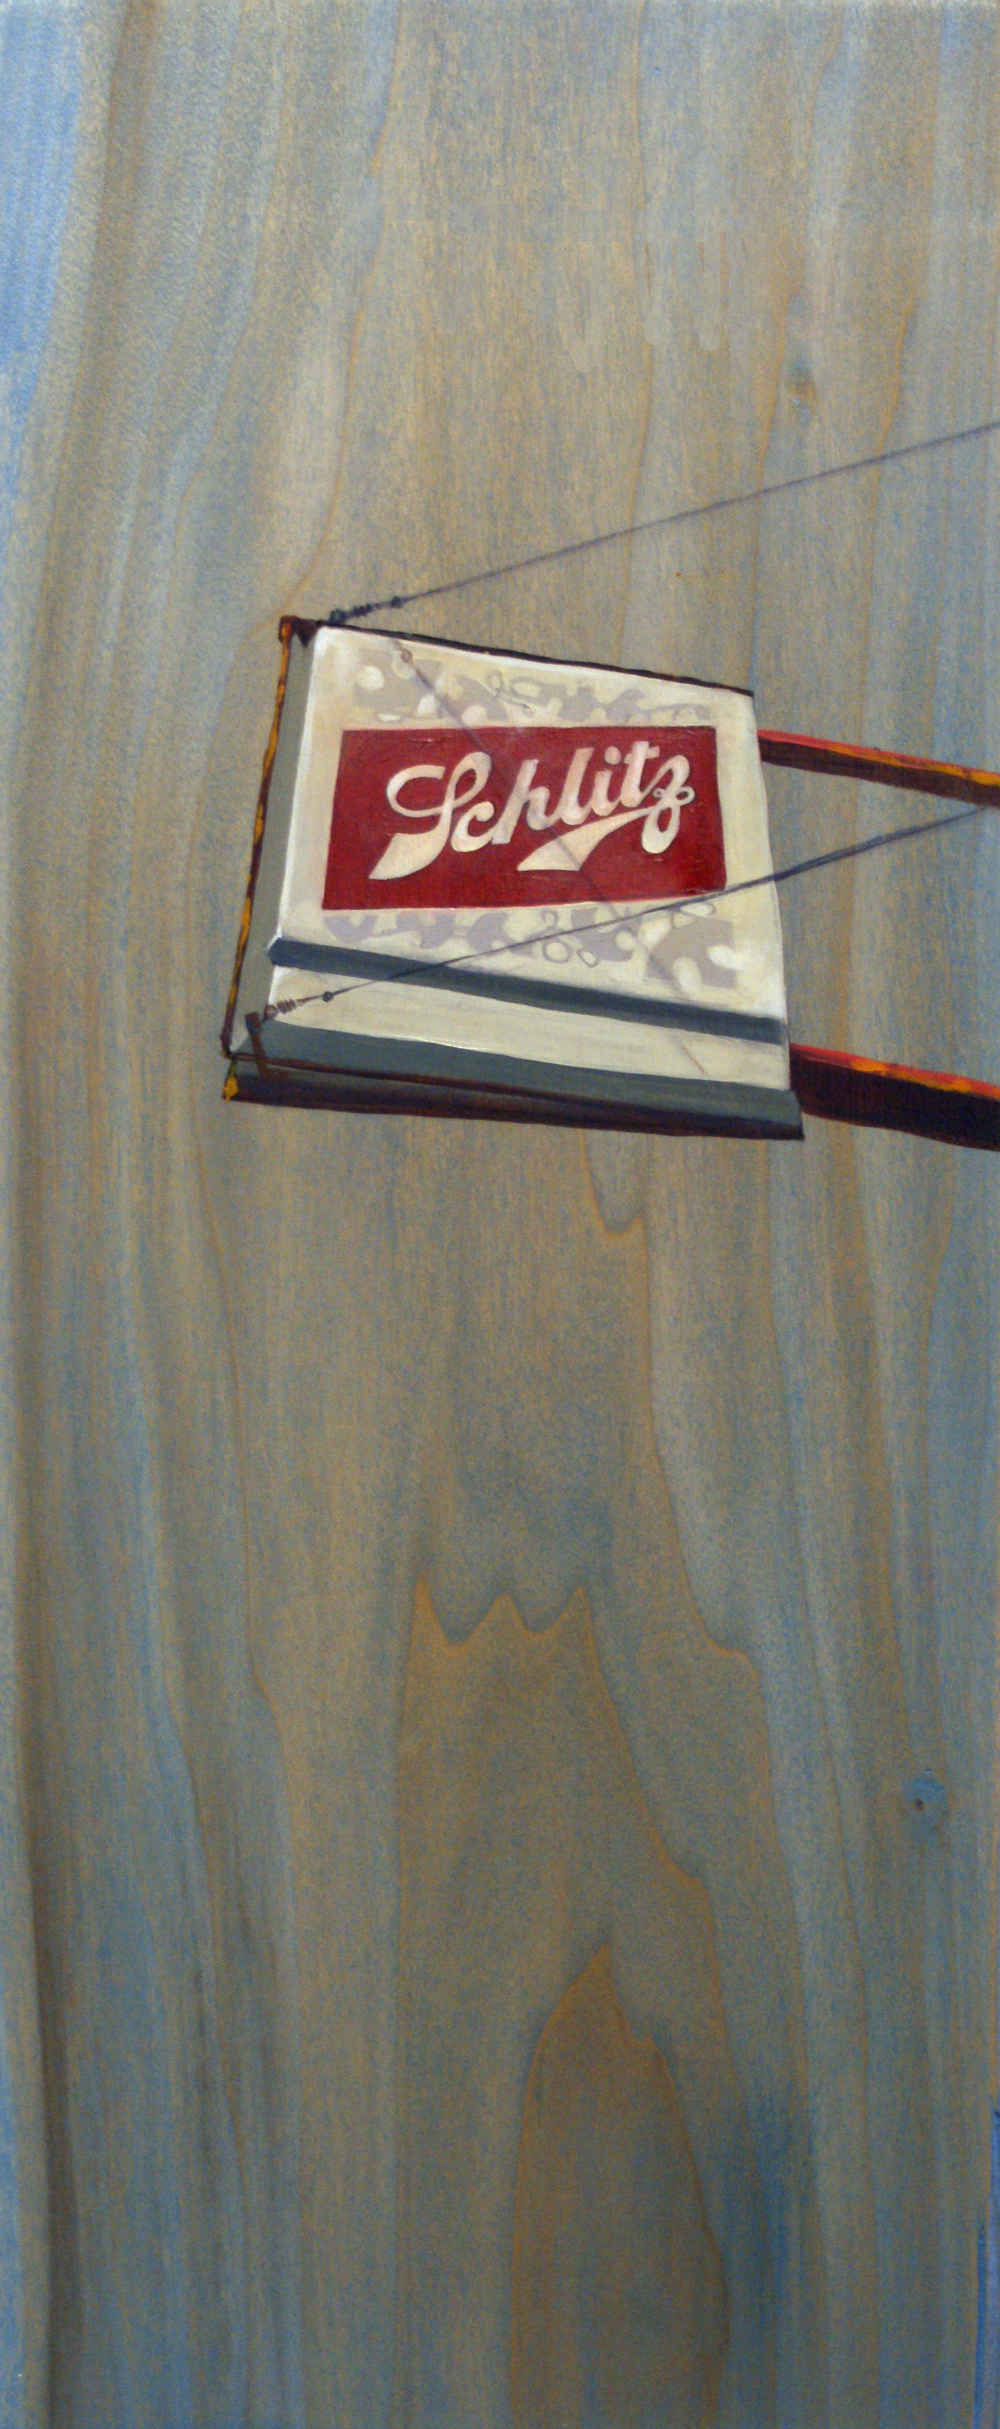 "Schlitz, 18"" x 8"", oil and acrylic on wood, 2011"